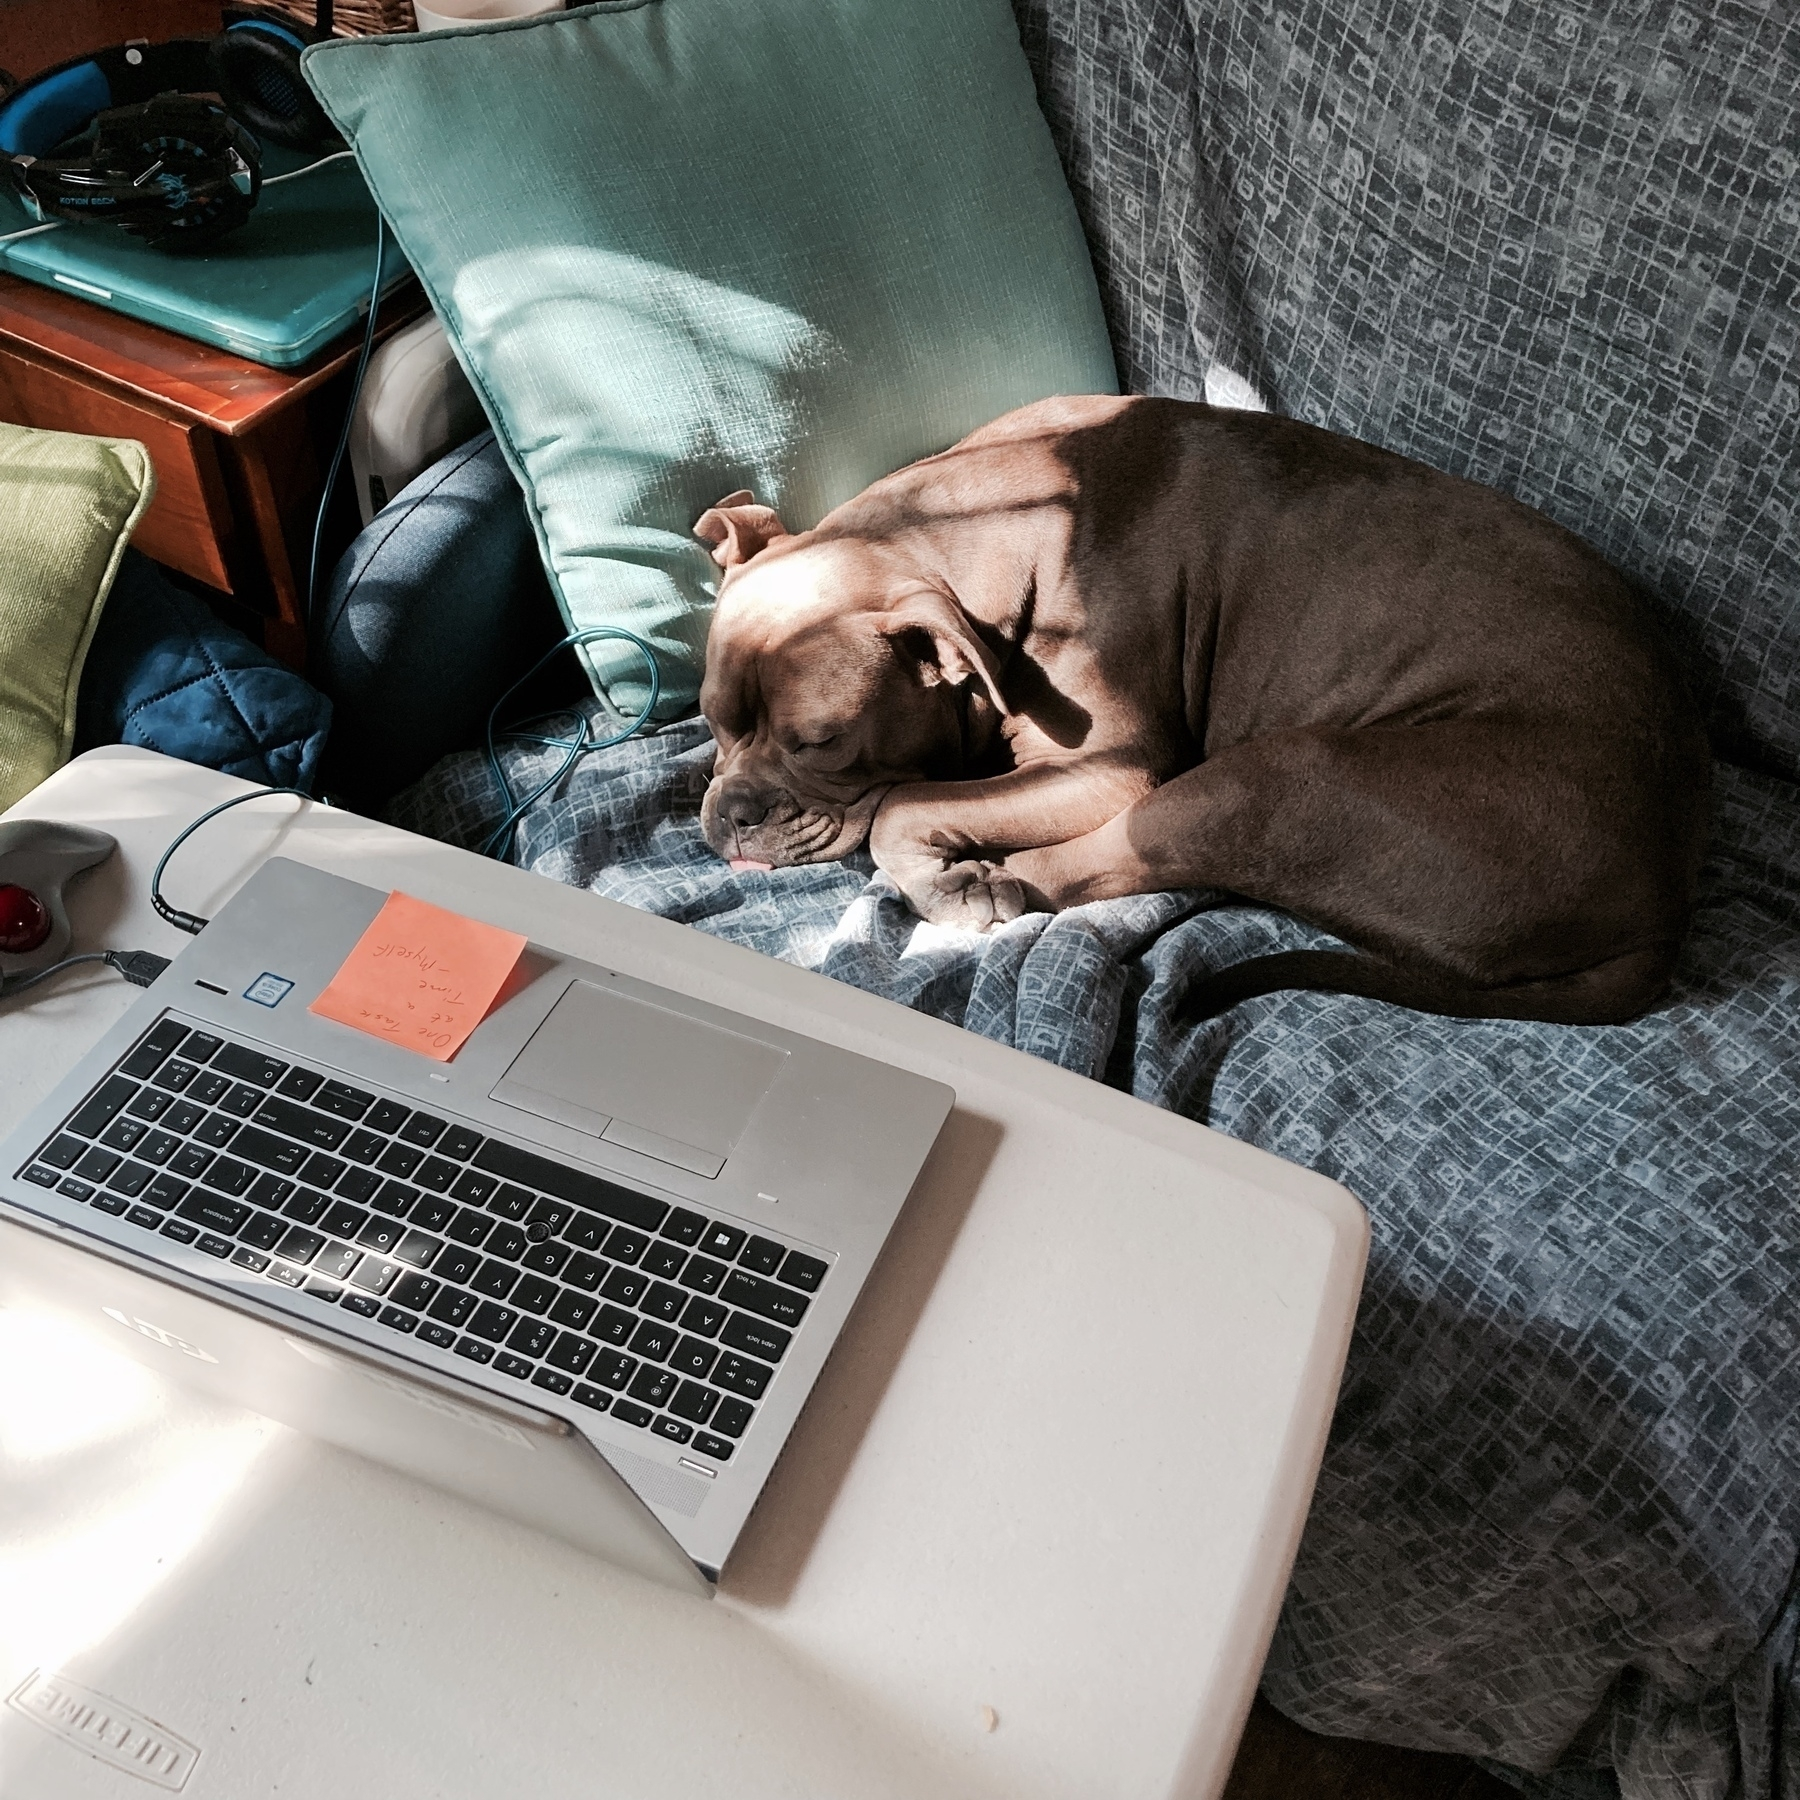 Lillie sleeping in front of laptop.